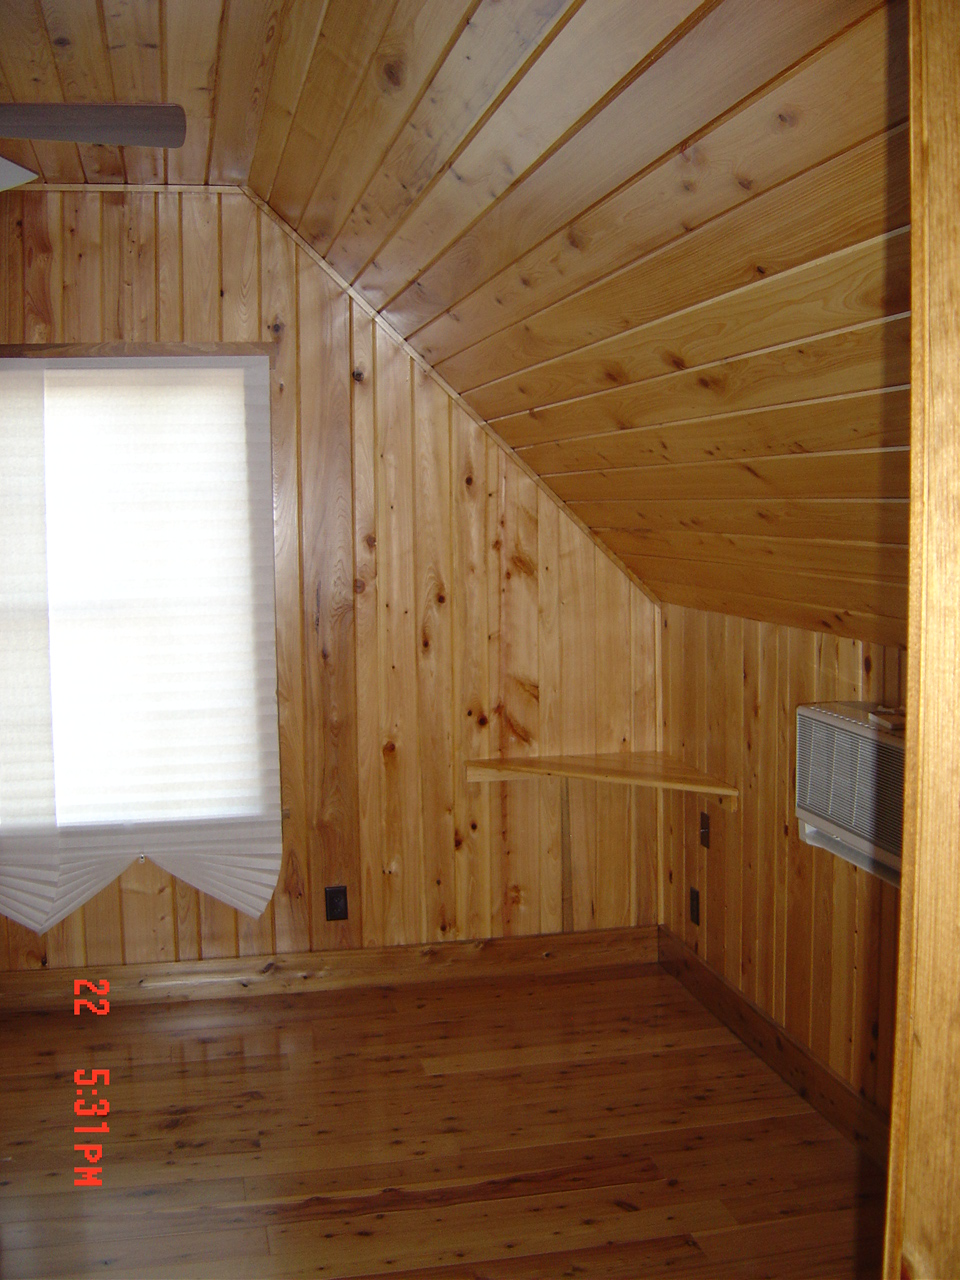 Interior tongue and groove joy studio design gallery best design for Tongue and groove interior wood paneling